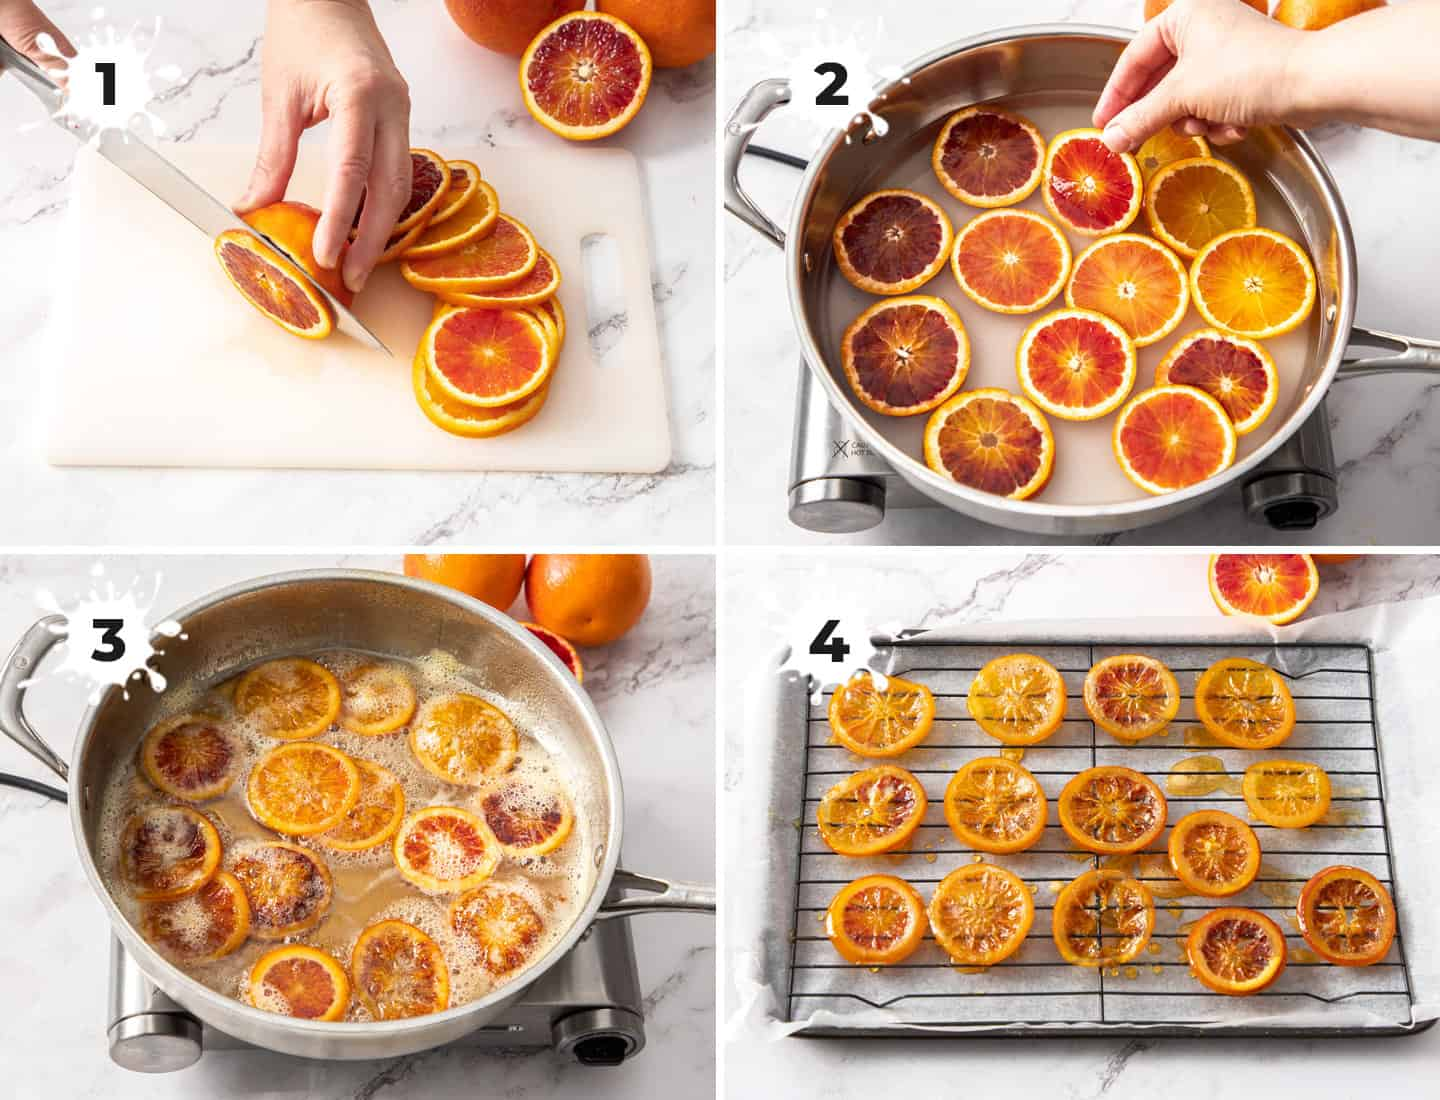 A collage of 4 images showing how to make candied oranges.